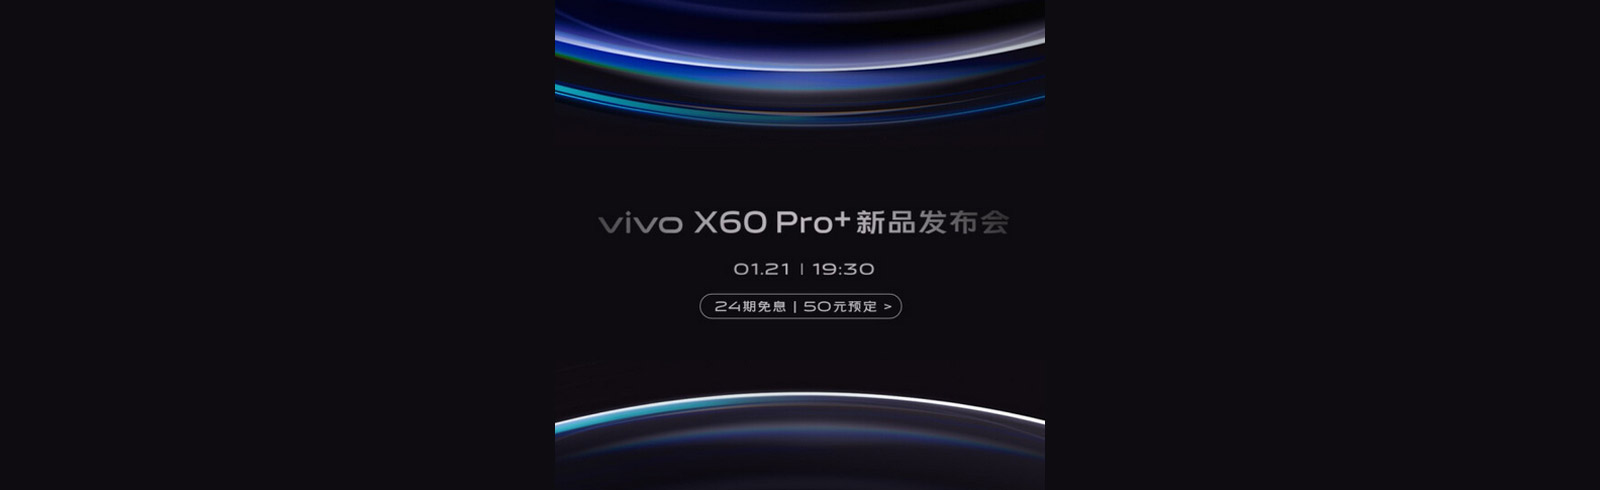 Vivo X60 Pro+ to be announced on January 21, will have a 50MP Samsung GN1 camera